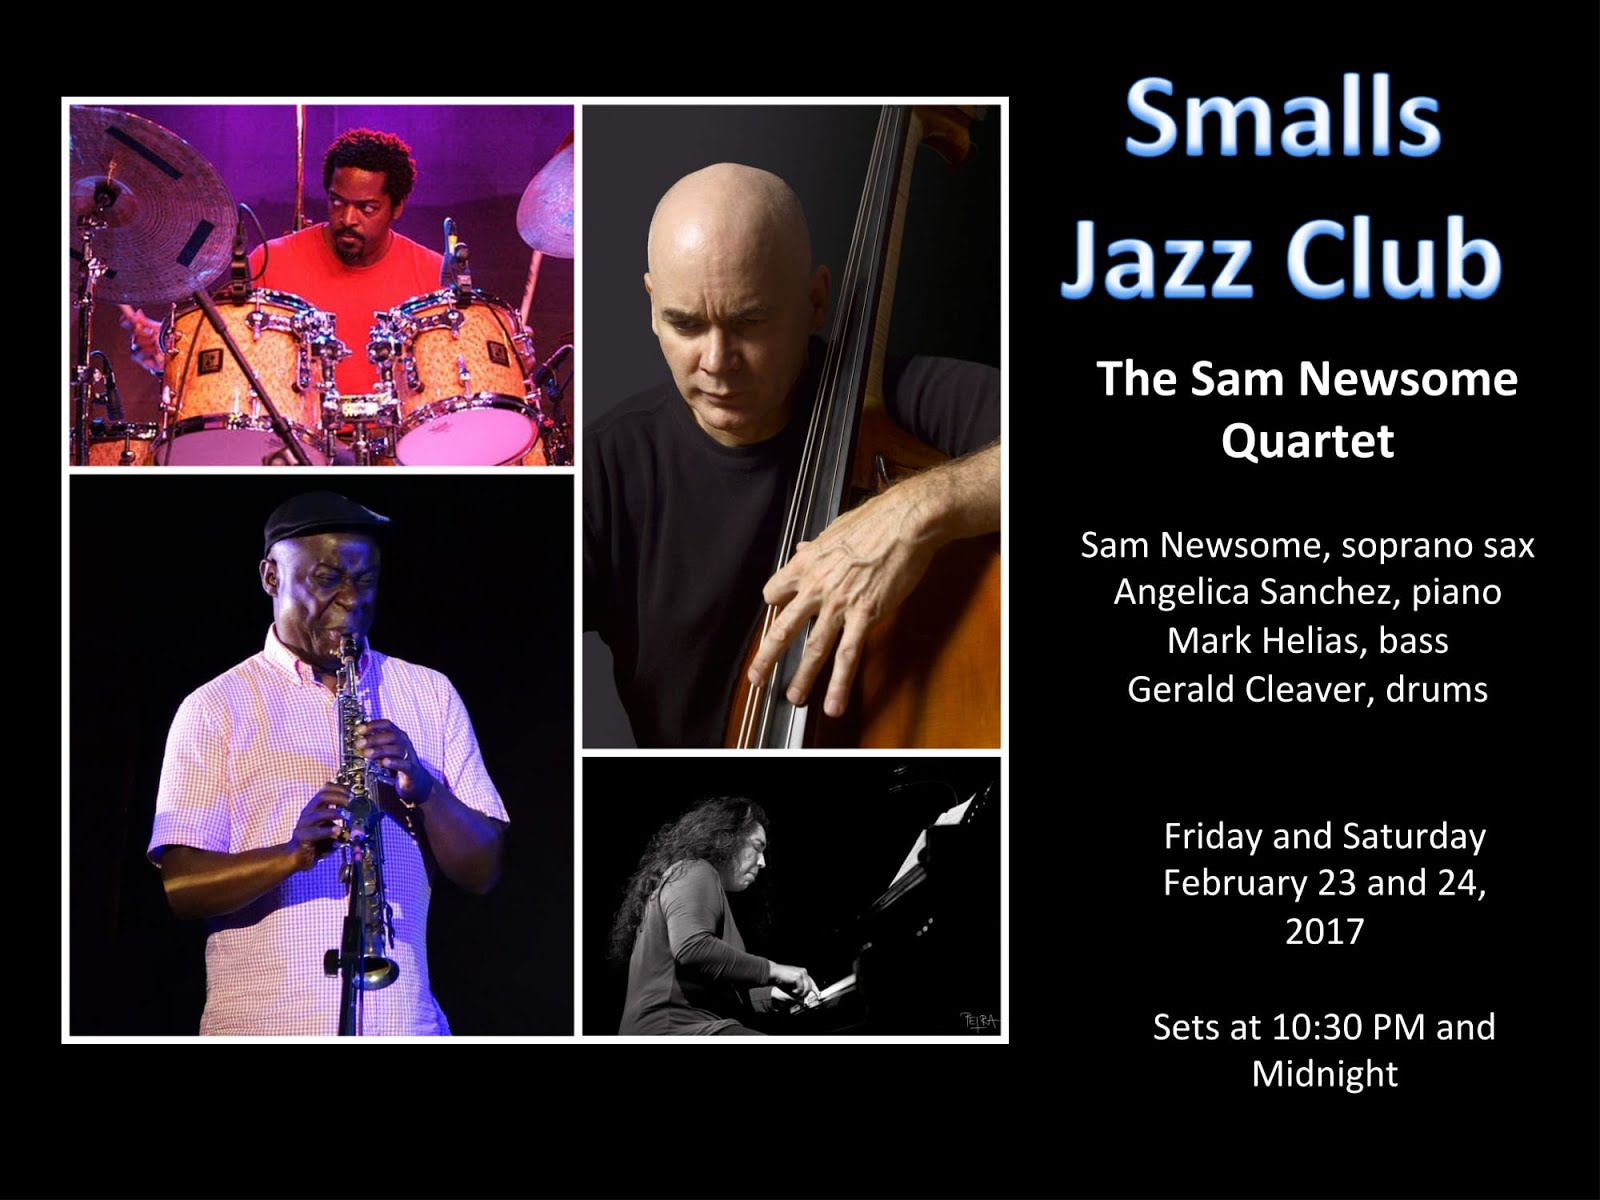 Coming in February 2017! The Sam Newsome Quartet at Smalls Jazz Club